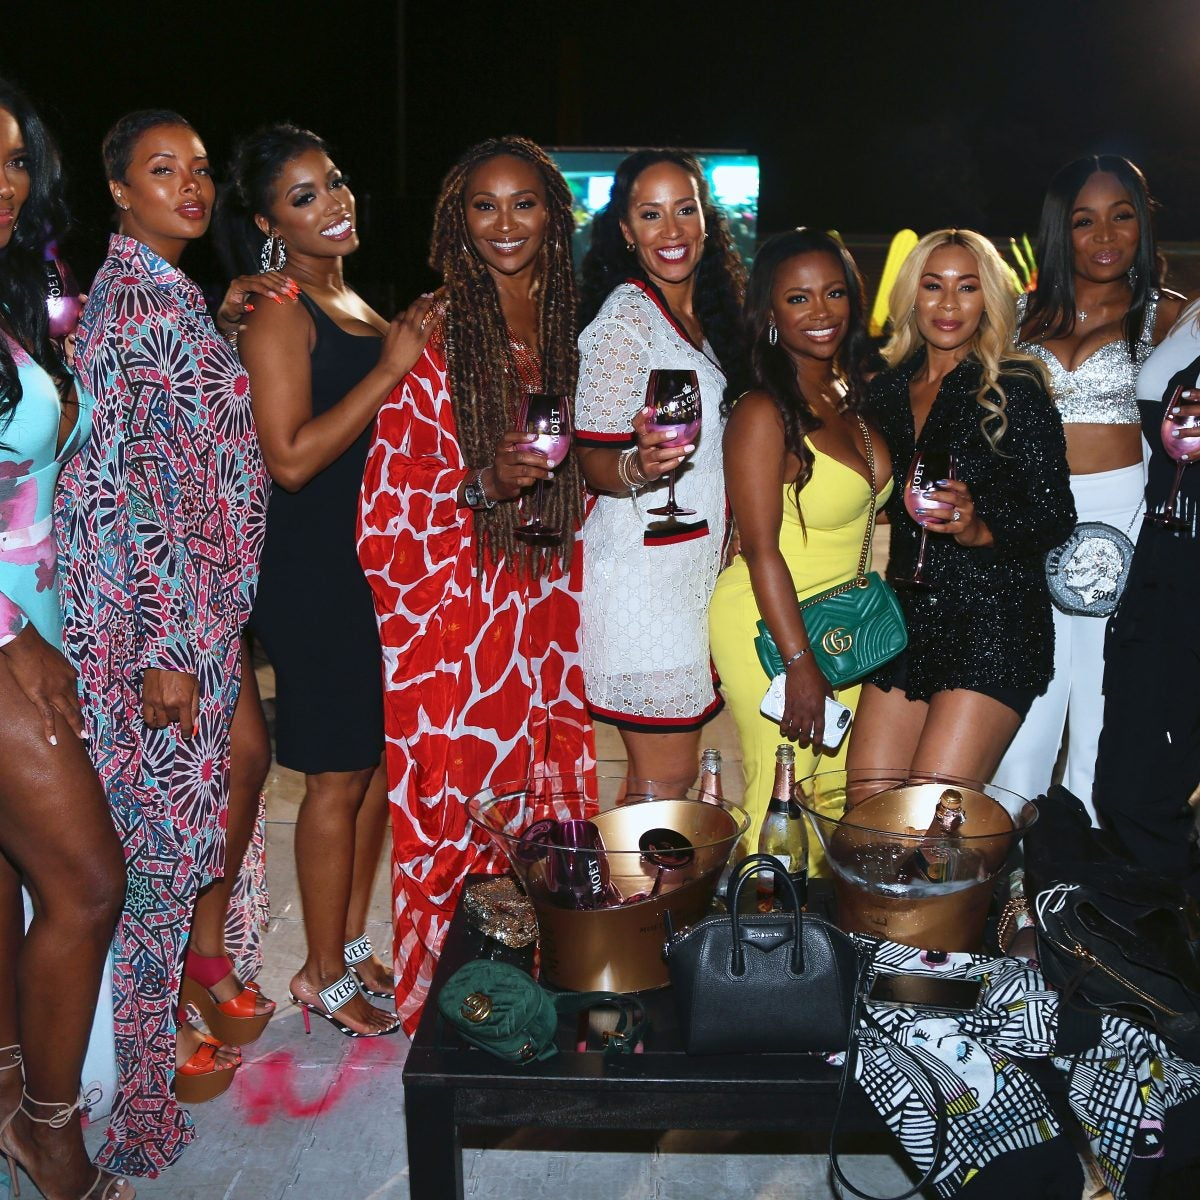 'The Real Housewives of Atlanta' Reunion Postponed Amid Coronavirus Outbreak